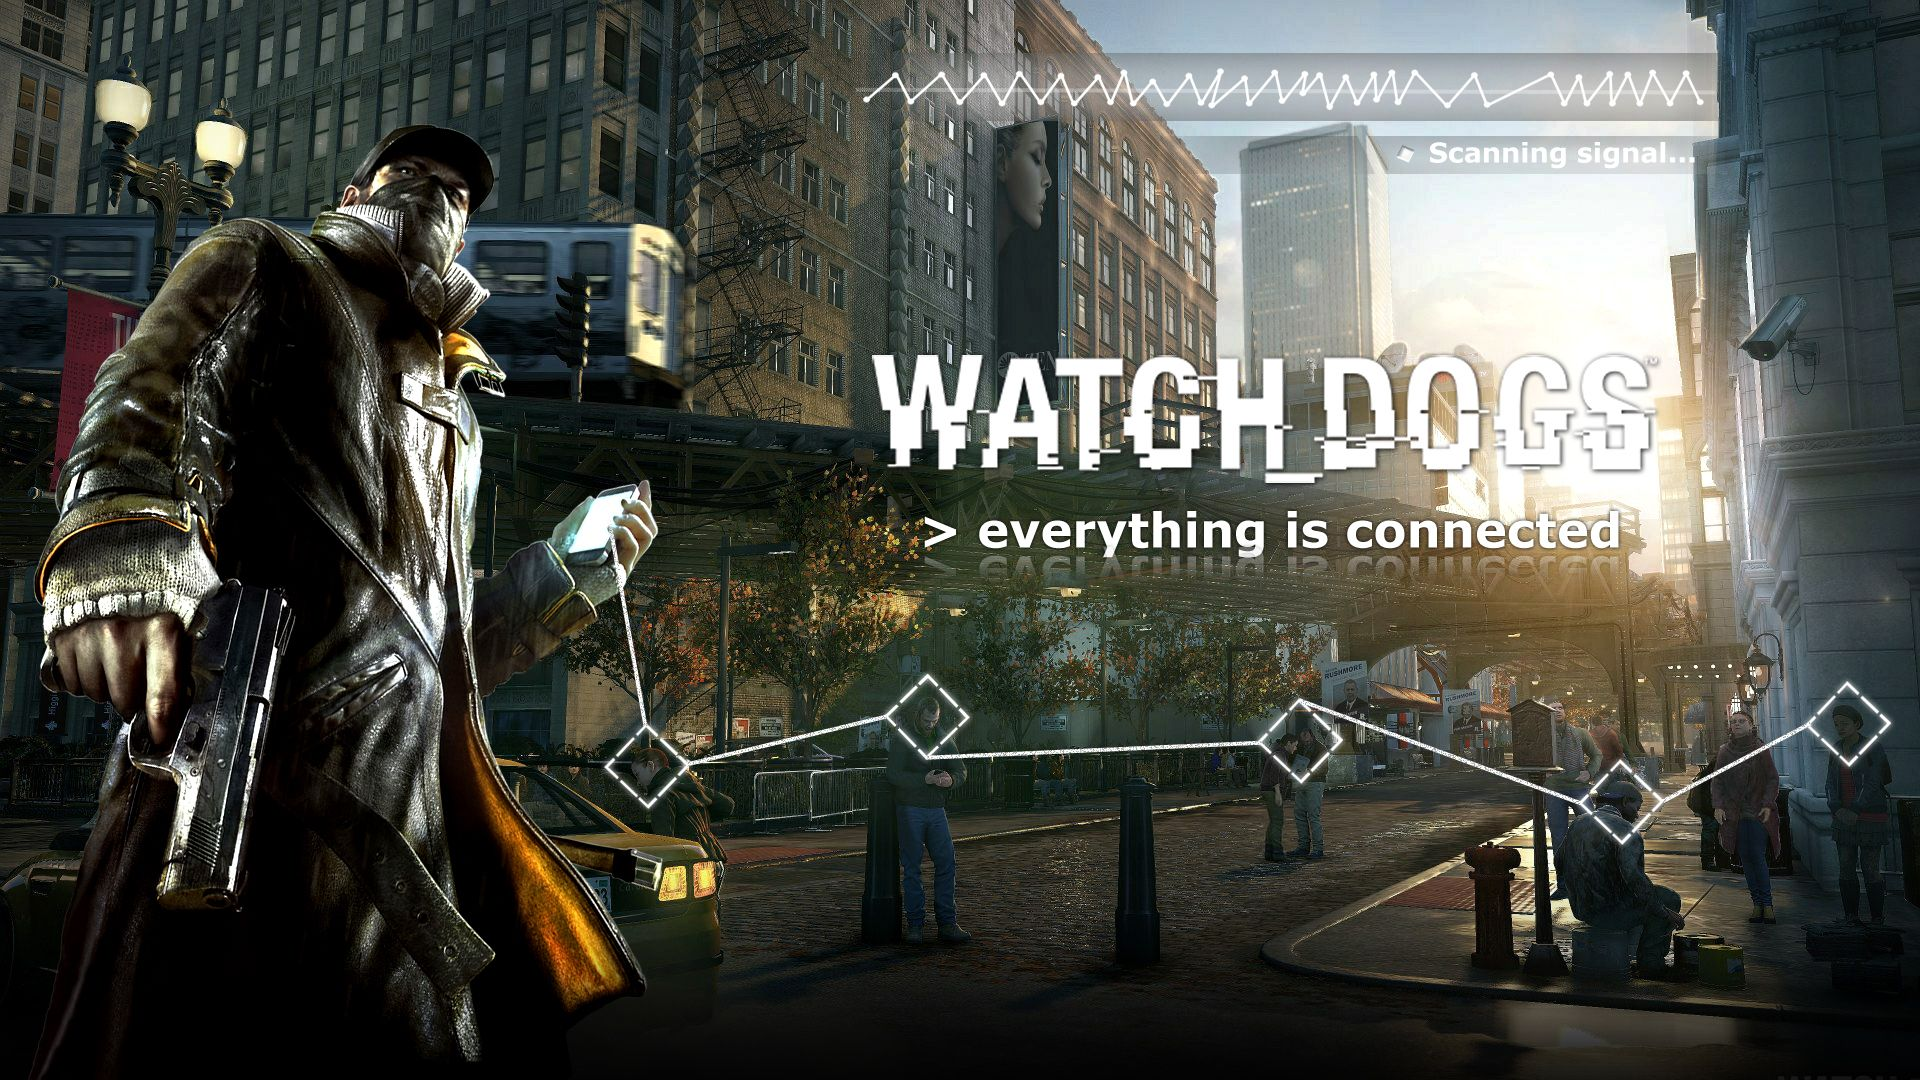 best WATCH DOGS images on Pinterest